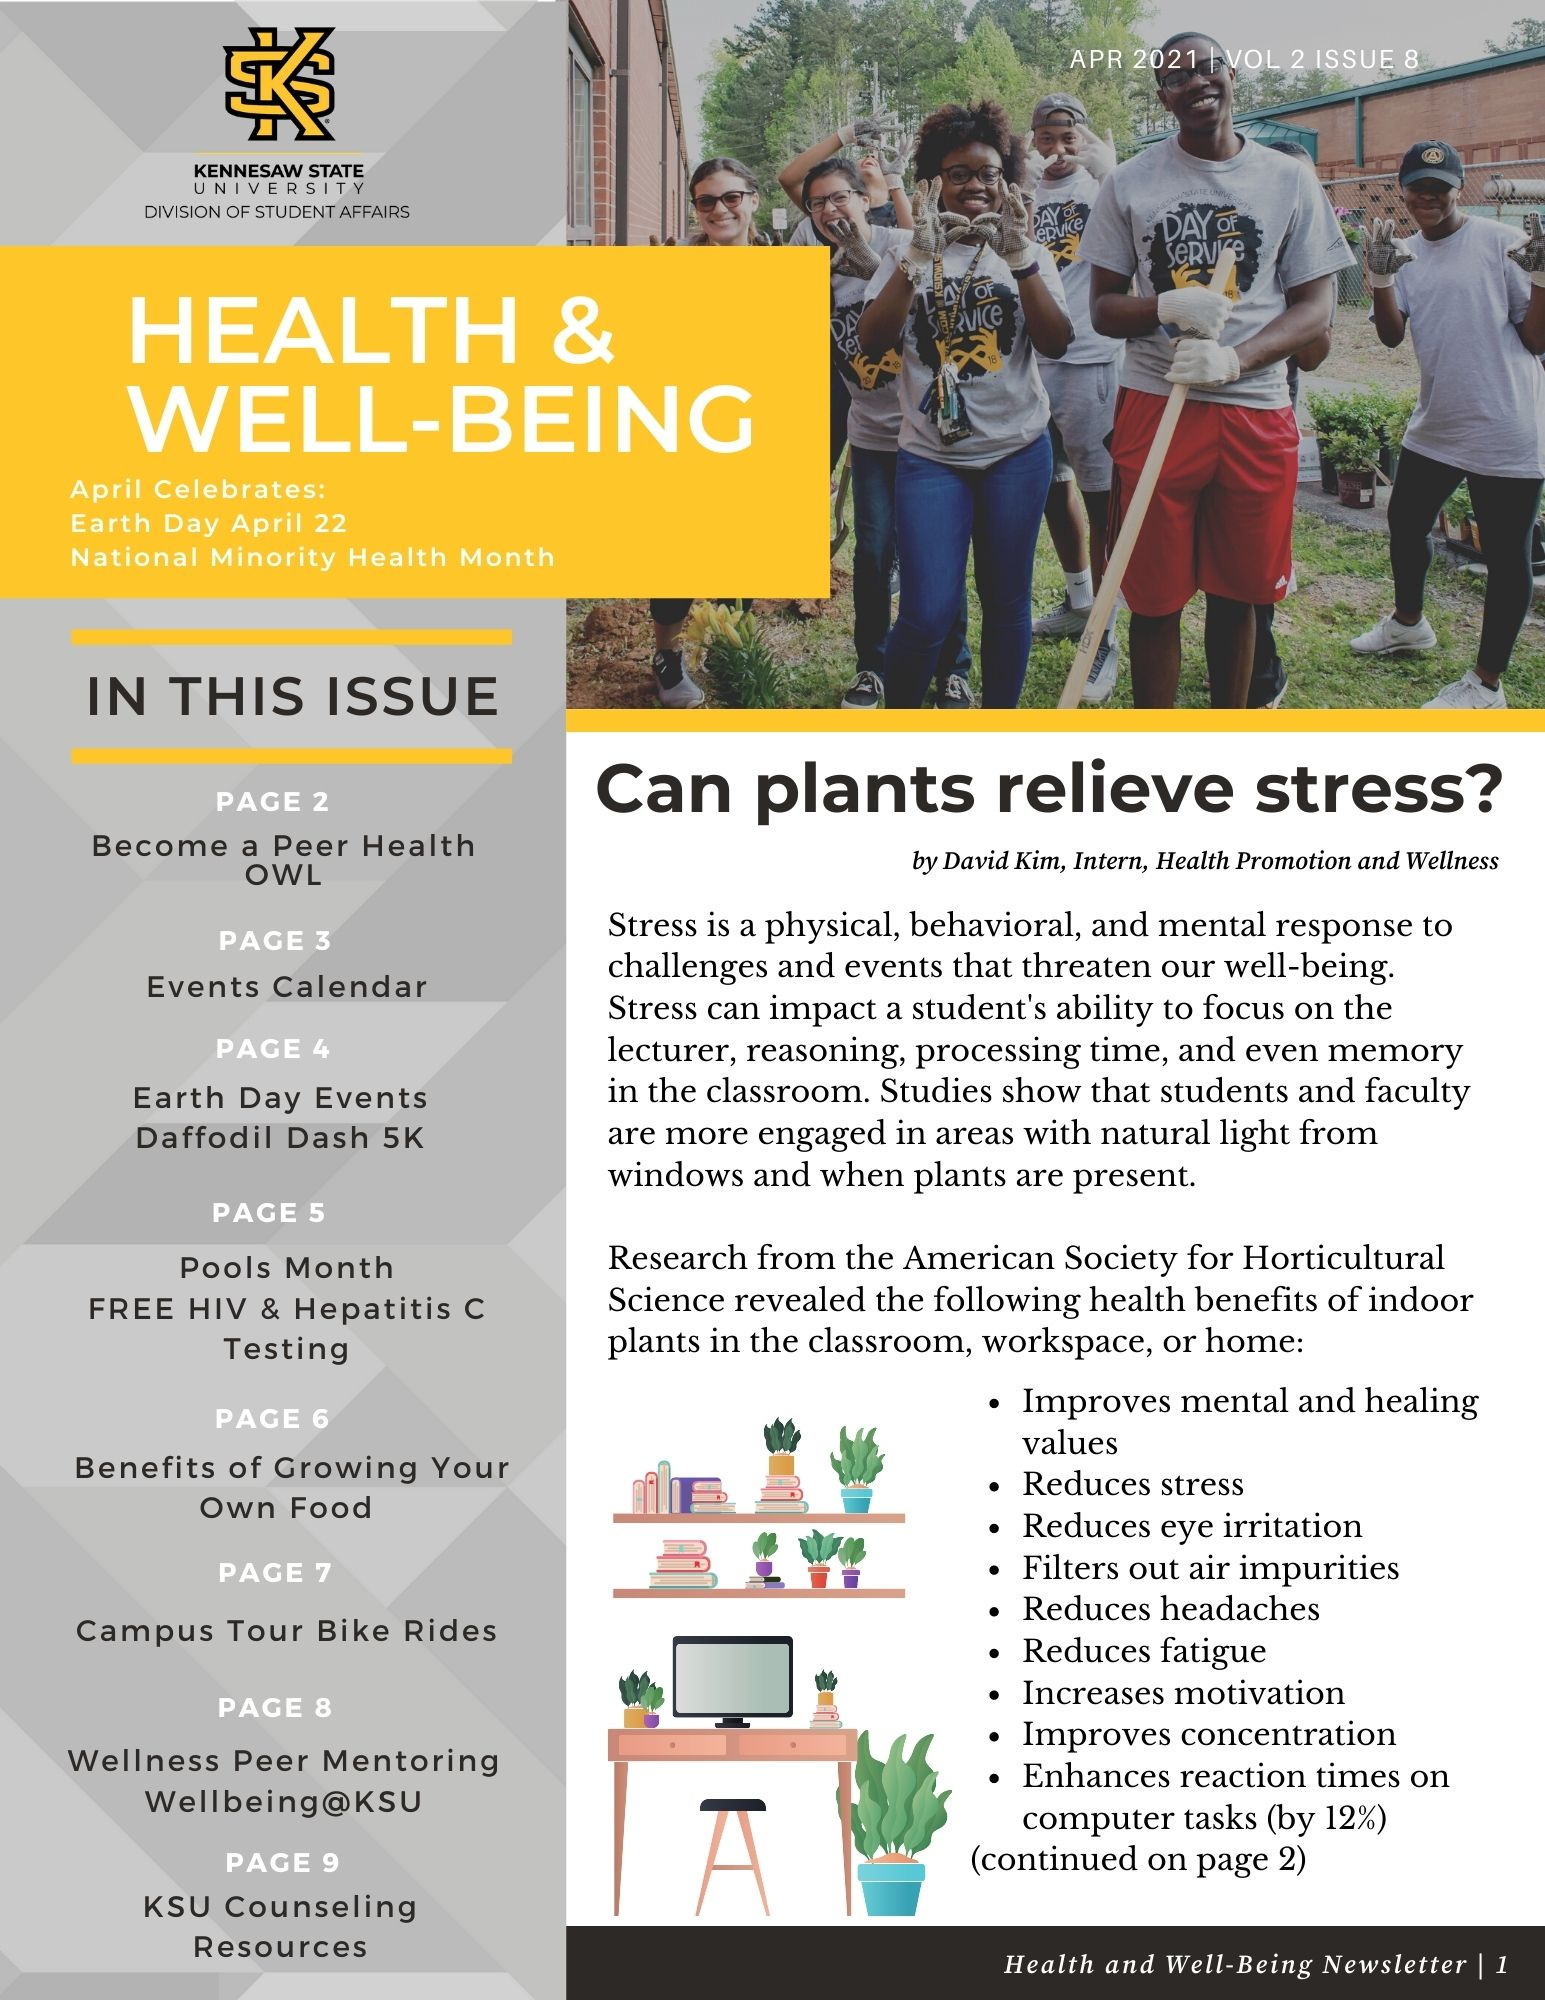 Health Wellbeing newletter cover image.